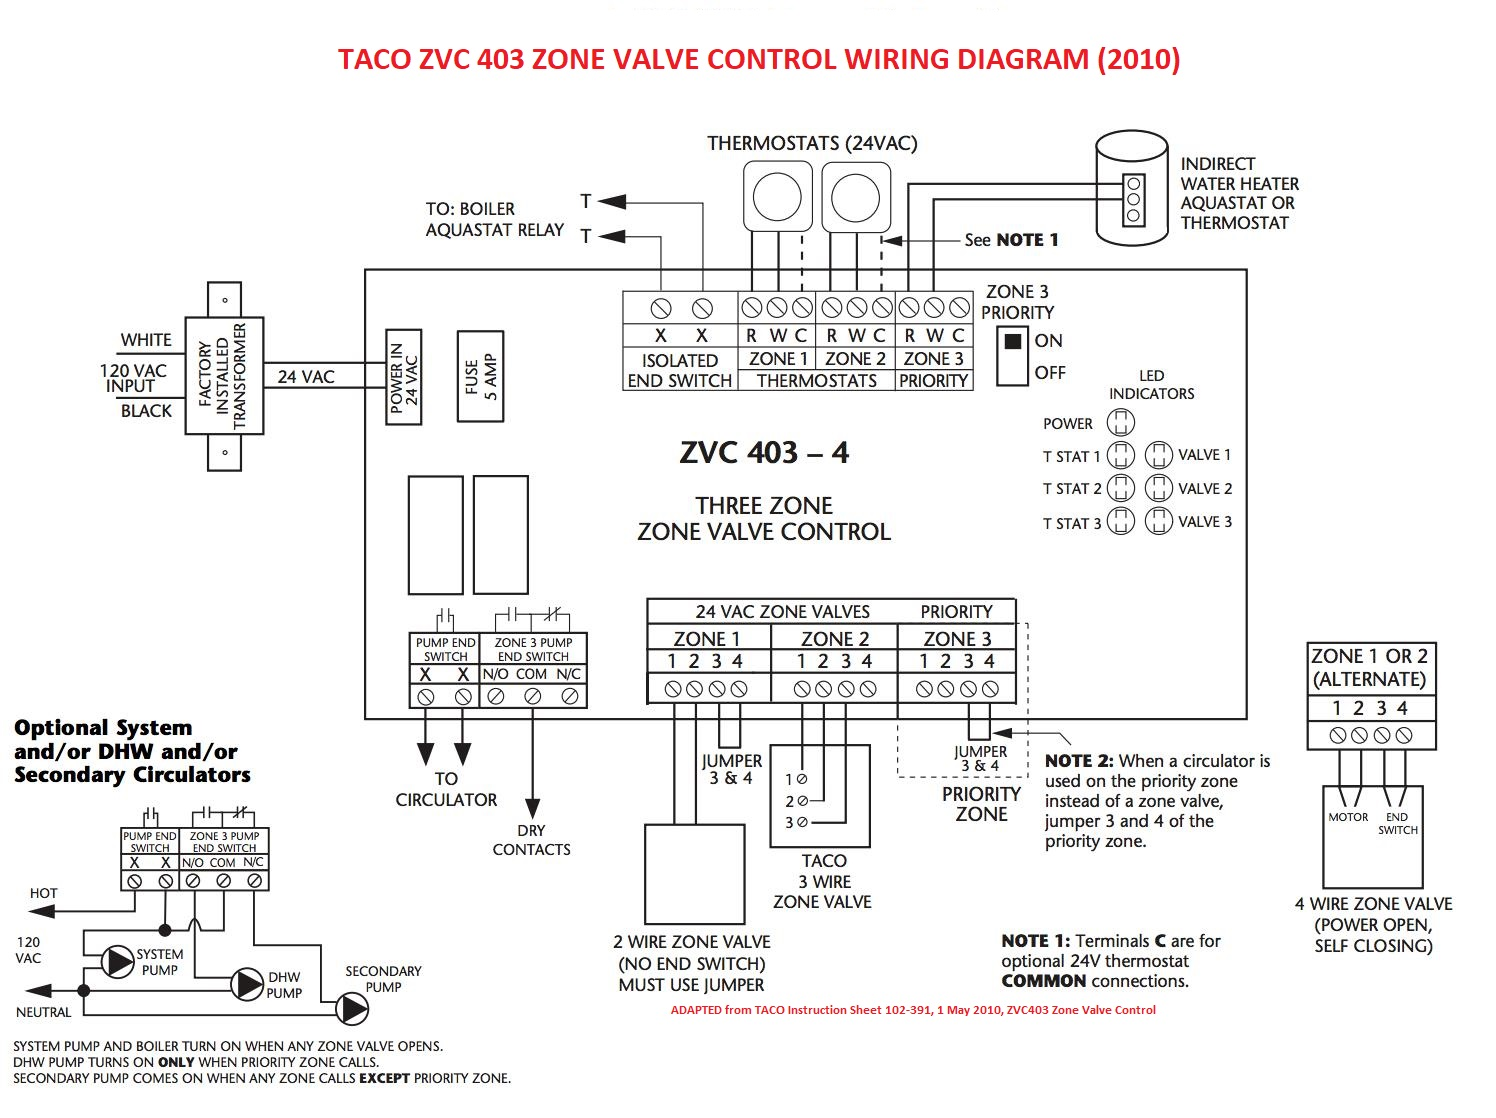 Taci ZVC493 wiring diagram - click to enlarge - at InspectApedia.com  Individual Hydronic Heating Zone Valve & Control ...